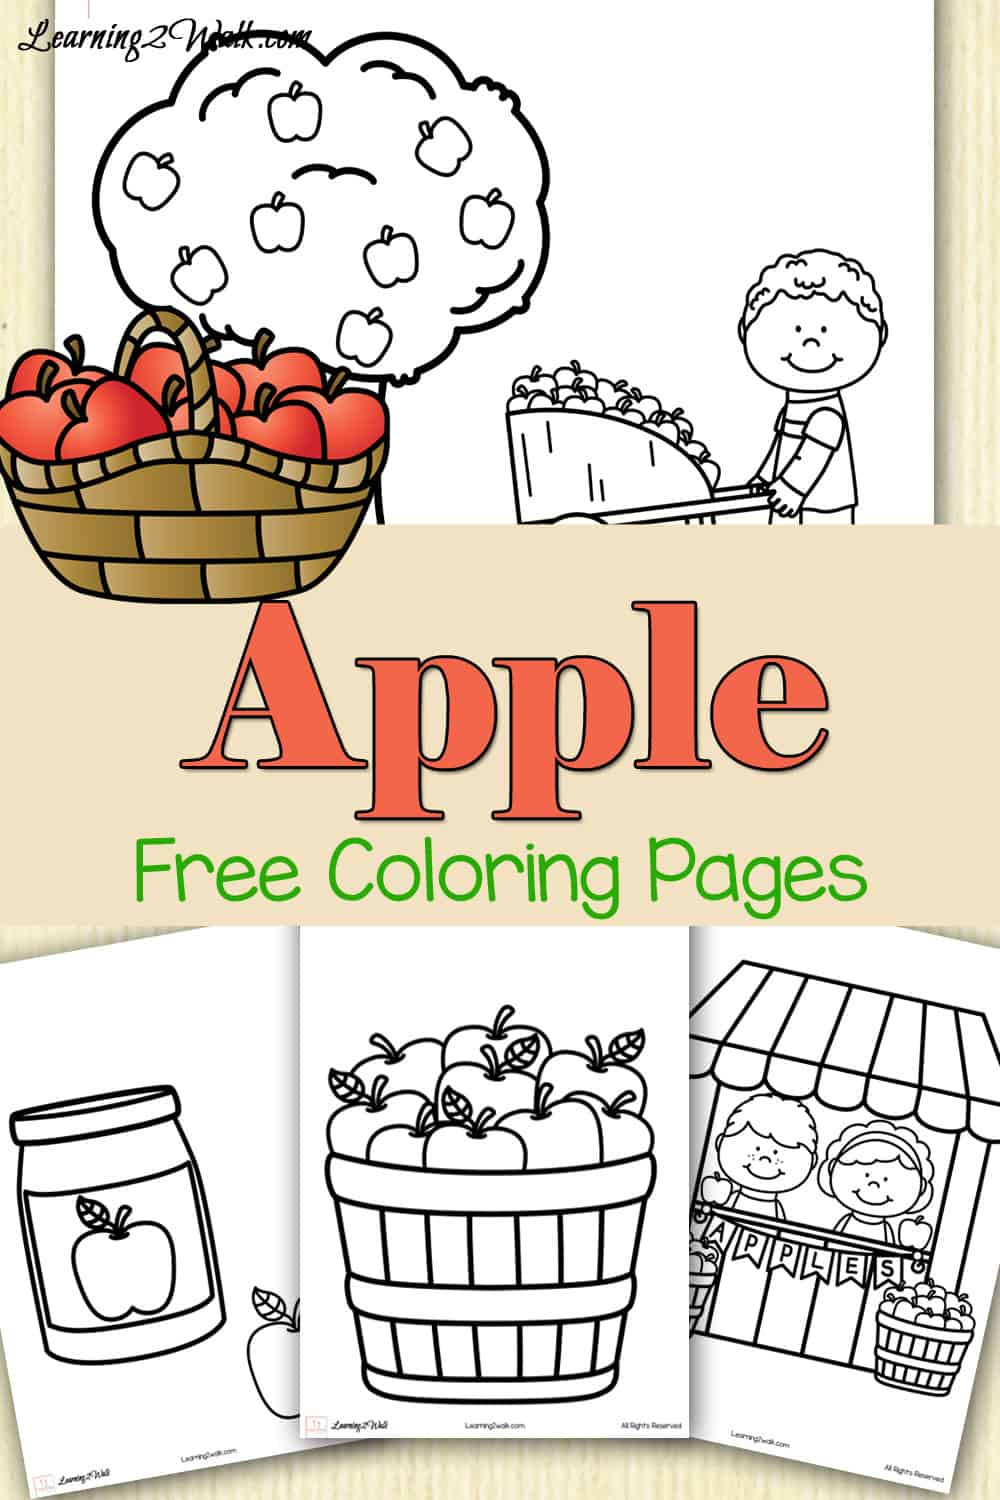 Apple Free Coloring Pages